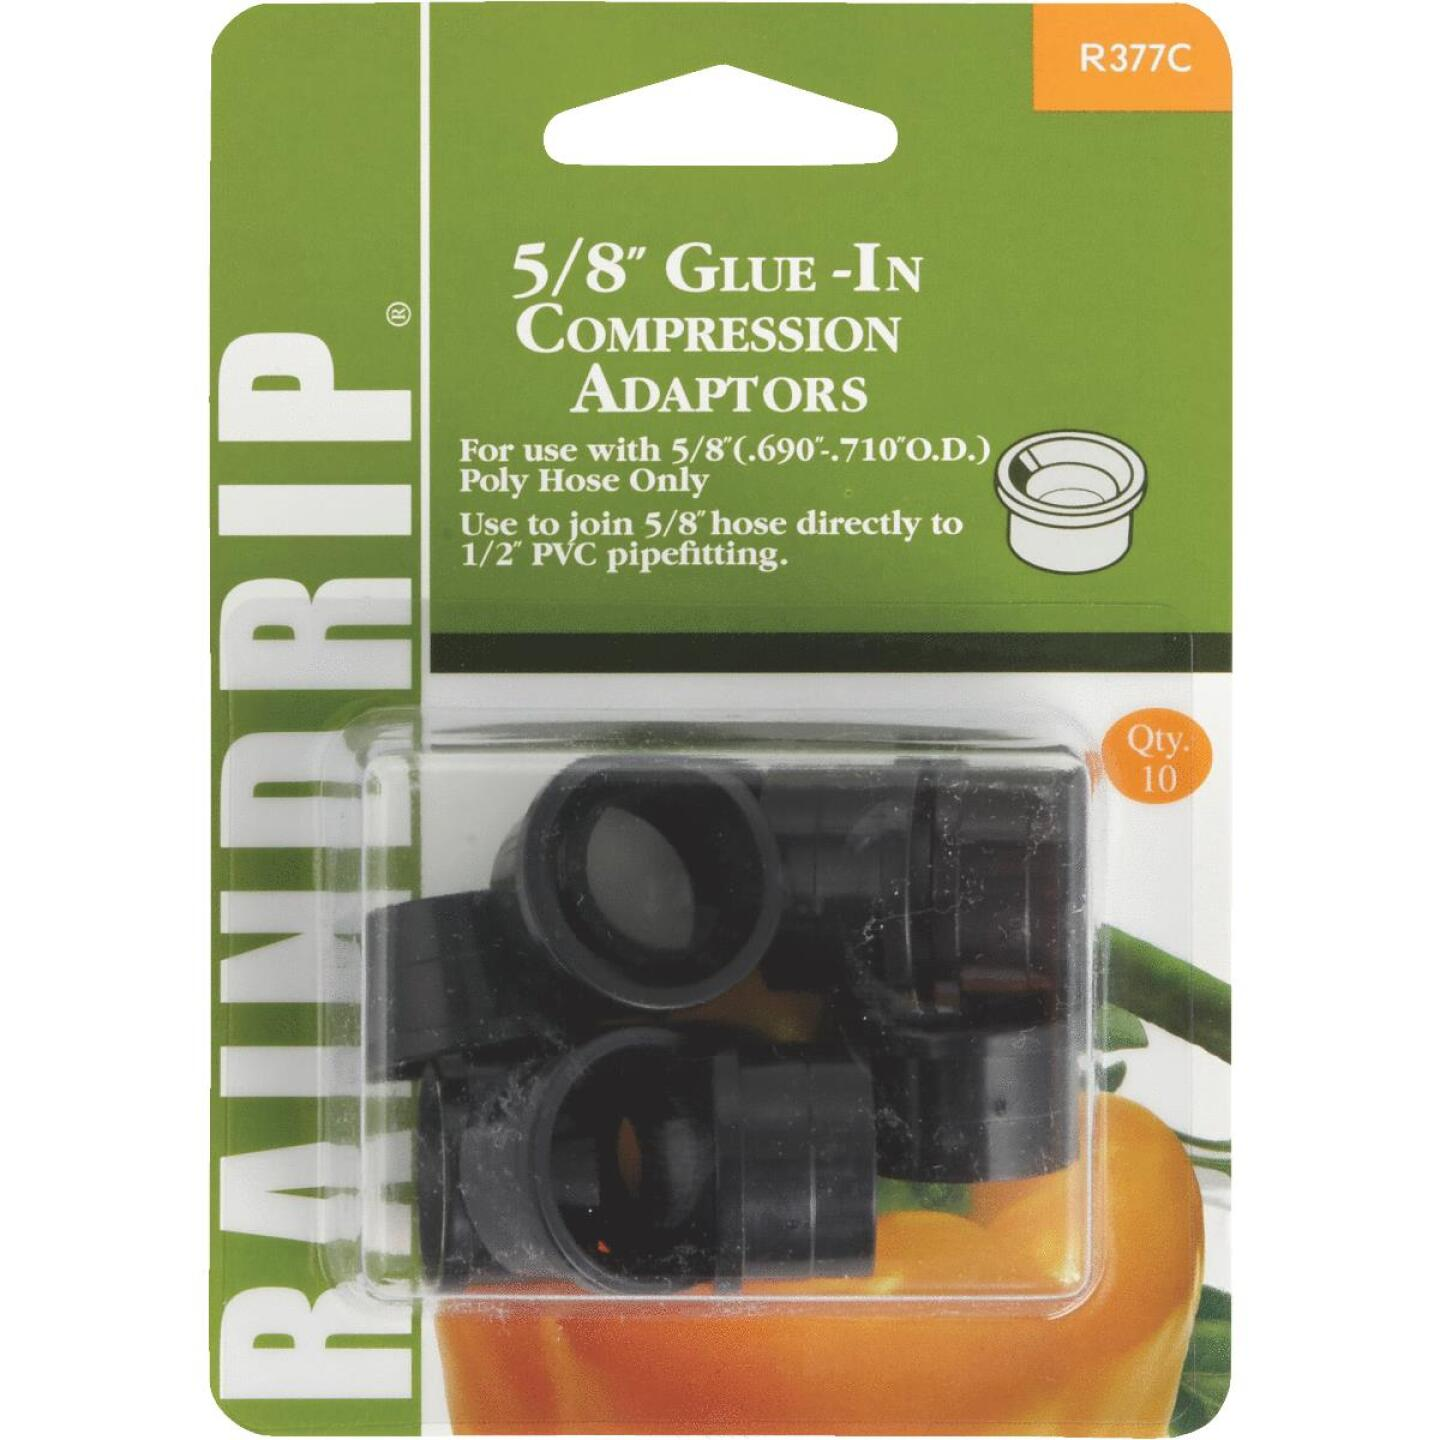 Raindrip 5/8 In. PVC x 5/8 In. Compression Glue-In Hose-To-Drip Adapter (10-Pack) Image 1